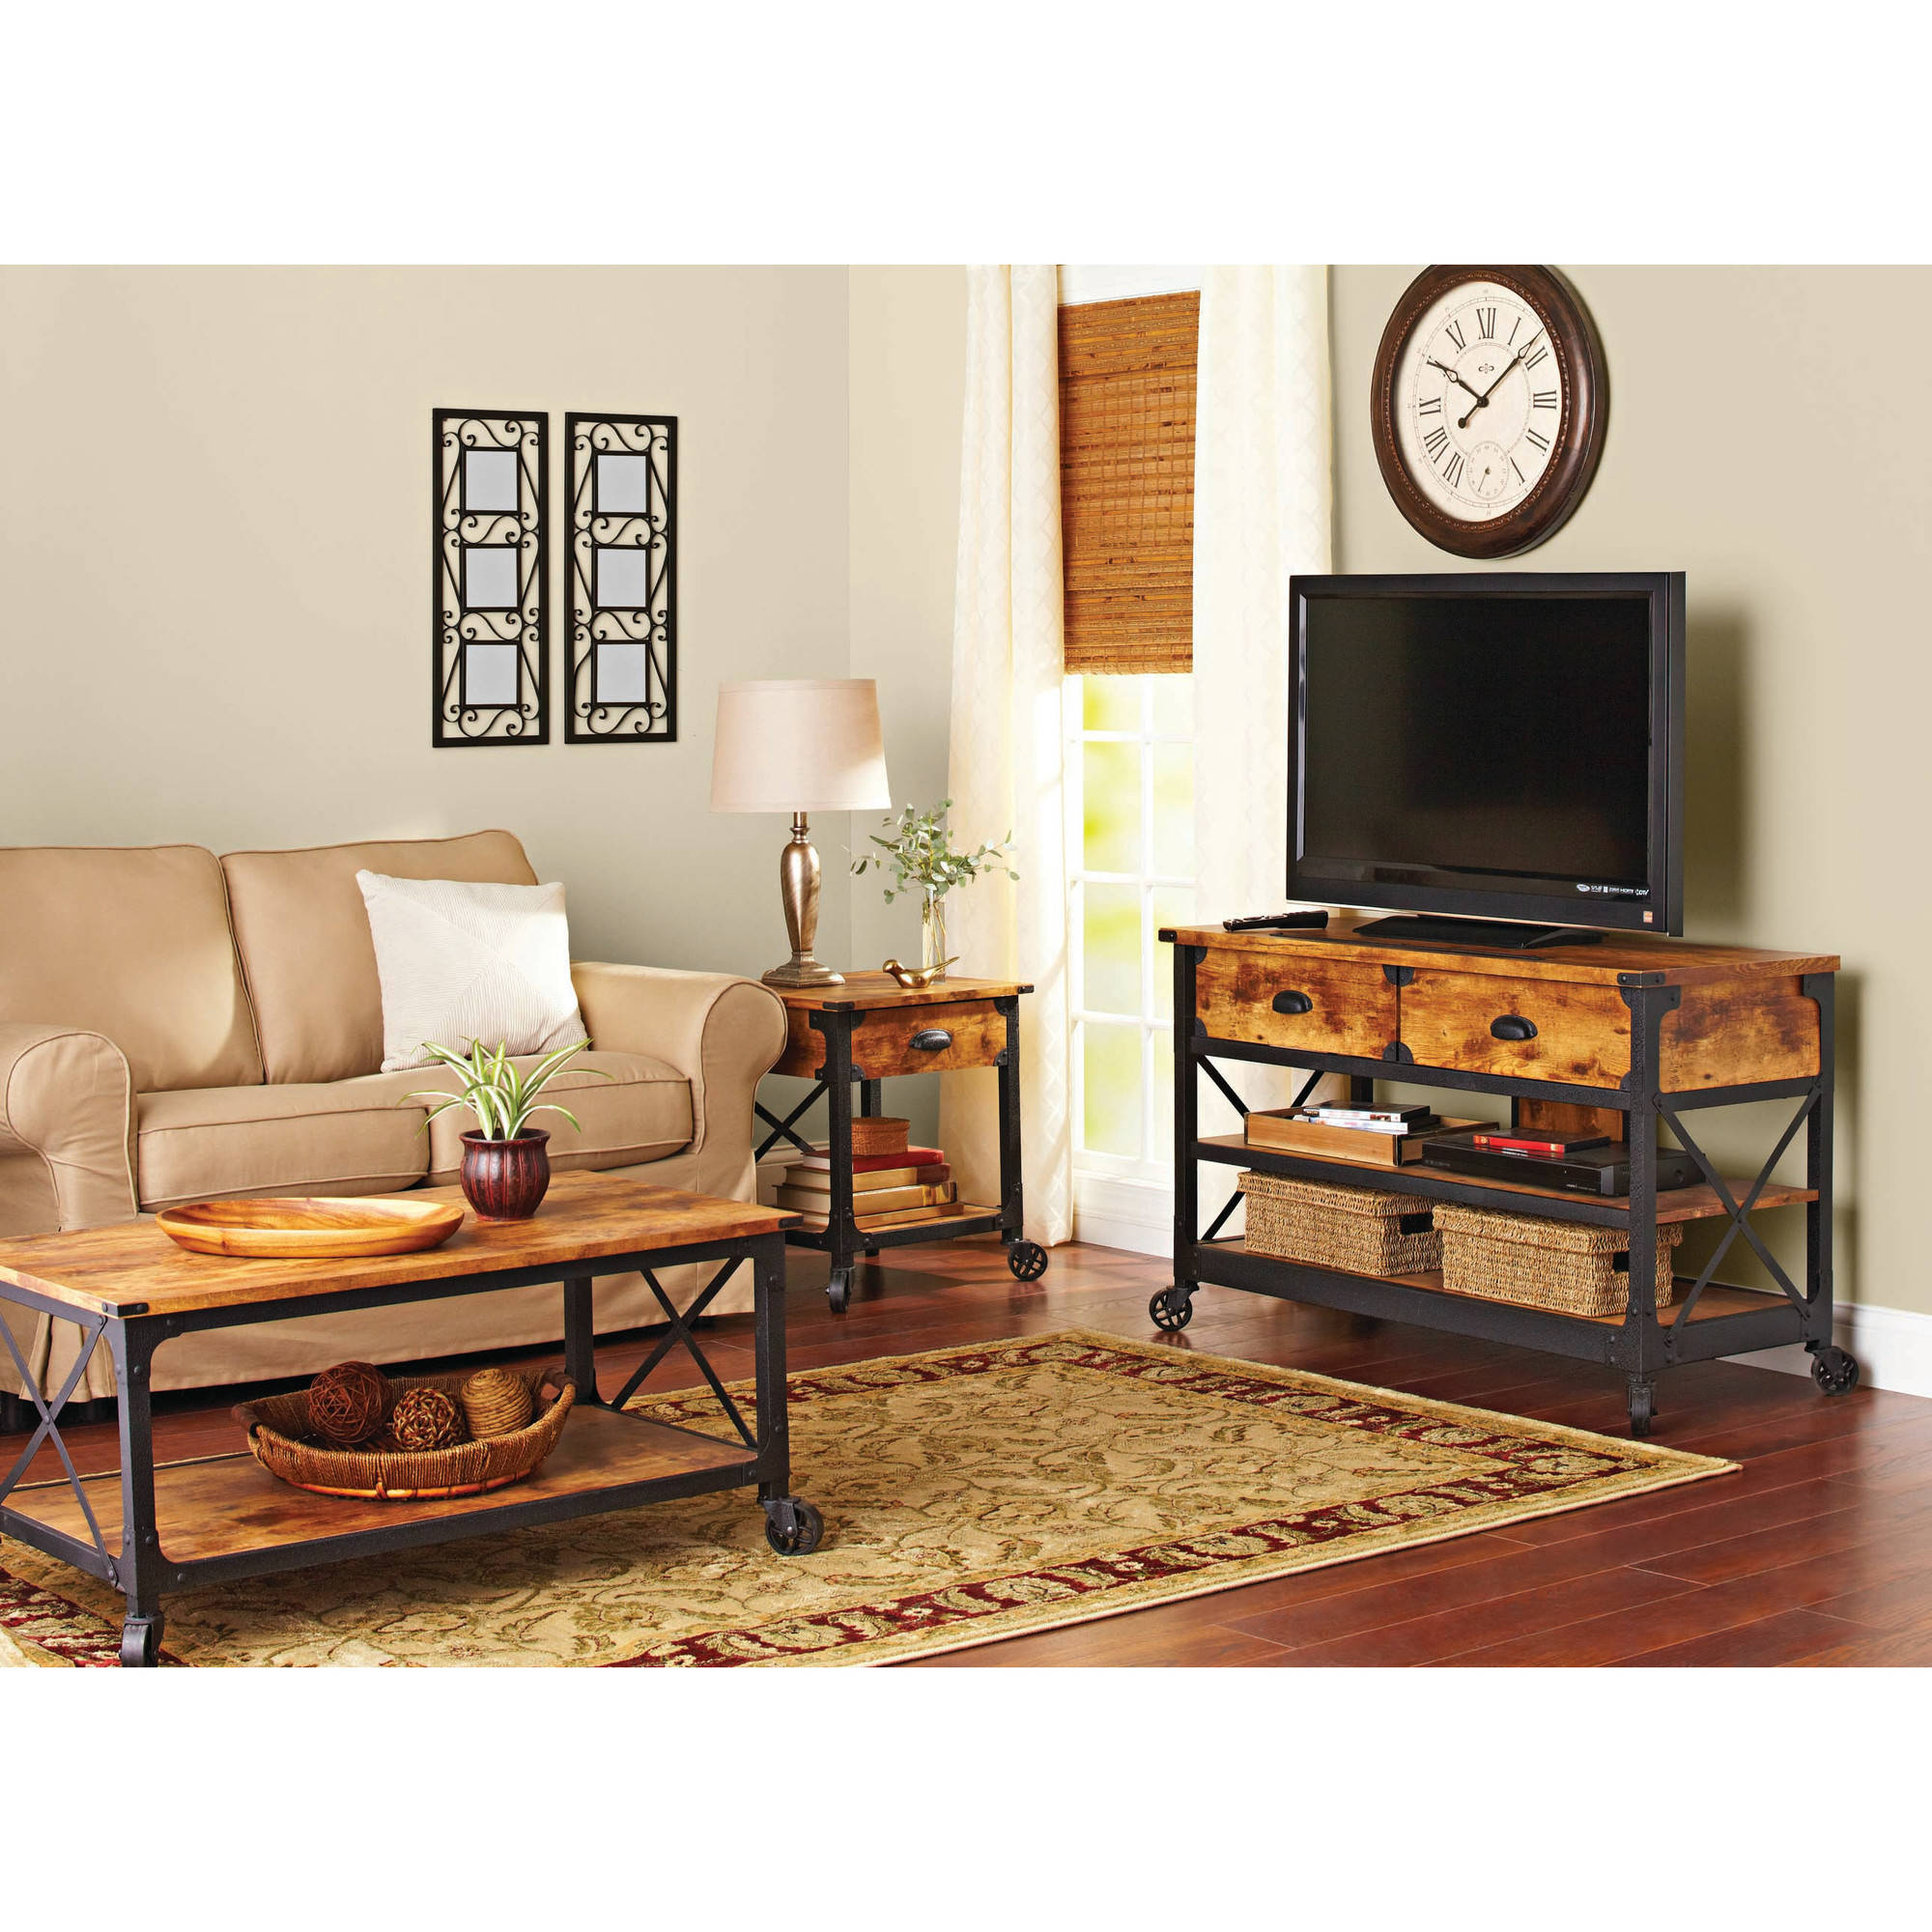 table sets living room.  Better Homes and Gardens Rustic Country Living Room Set Walmart com